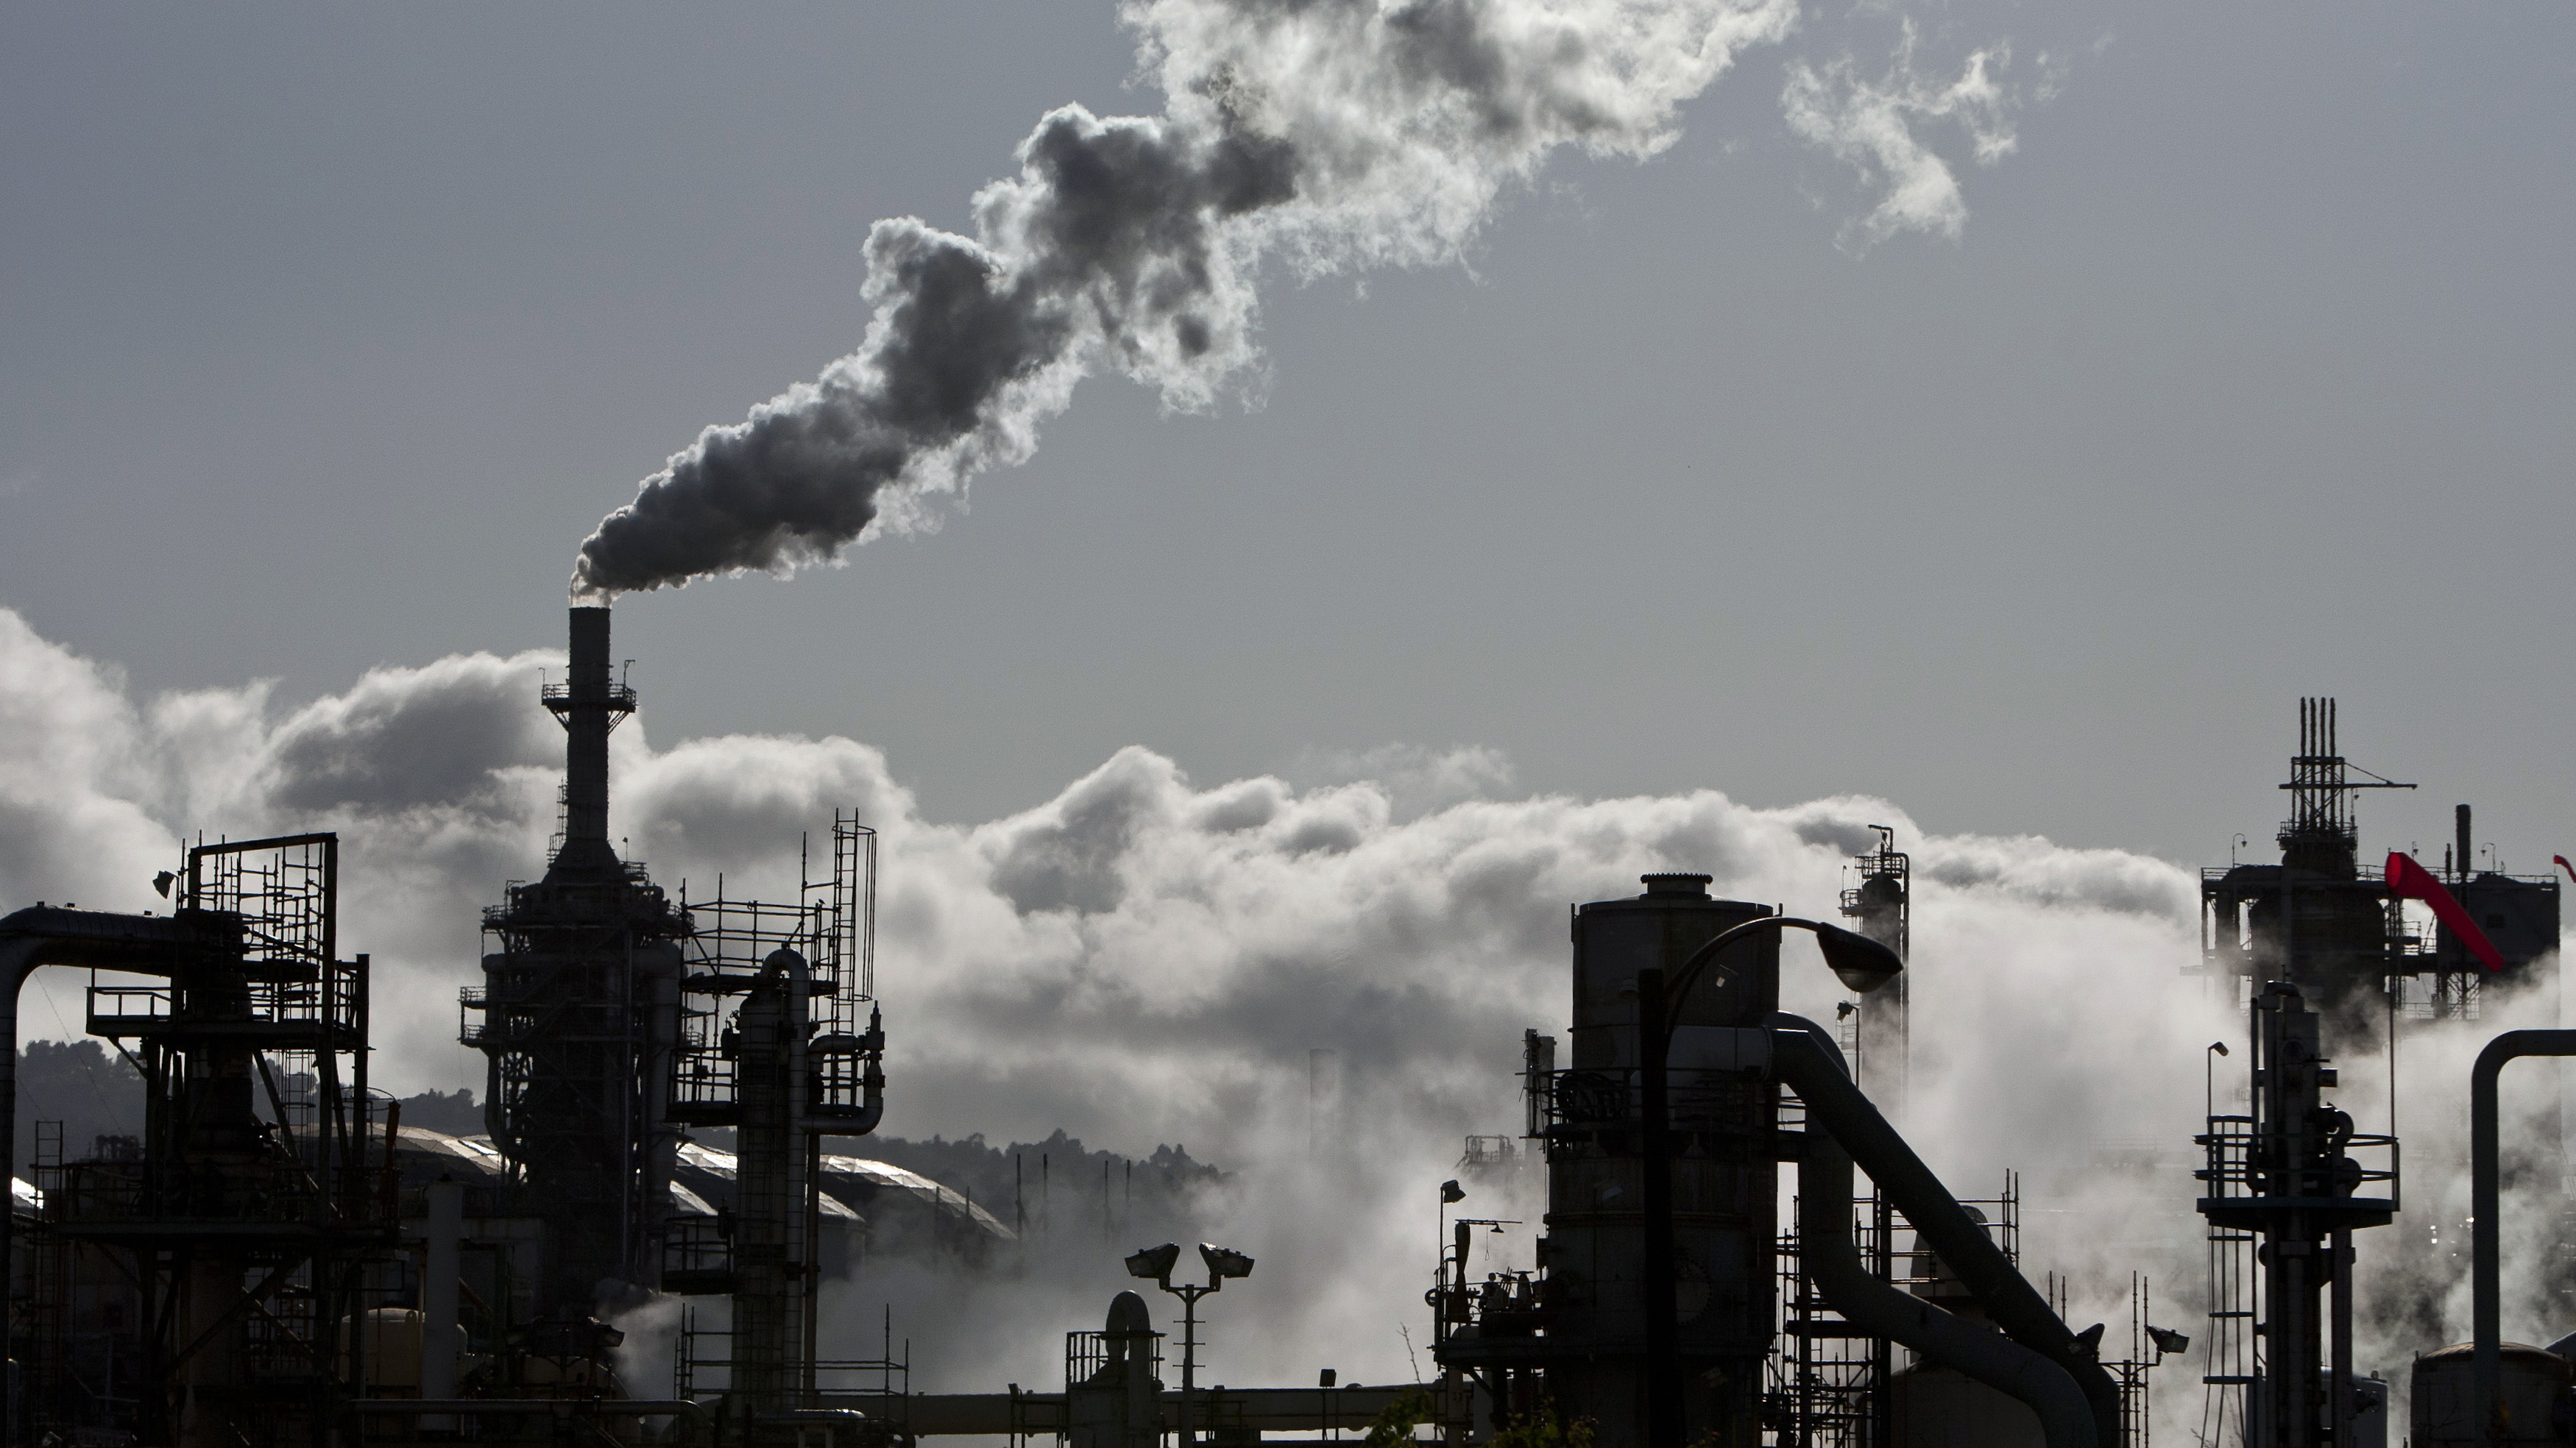 Smoke is released into the sky at a refinery in Wilmington, California March 24, 2012. Picture taken March 24, 2012. REUTERS/Bret Hartman  (UNITED STATES - Tags: ENERGY ENVIRONMENT BUSINESS INDUSTRIAL COMMODITIES) - GM1E83R12LB02